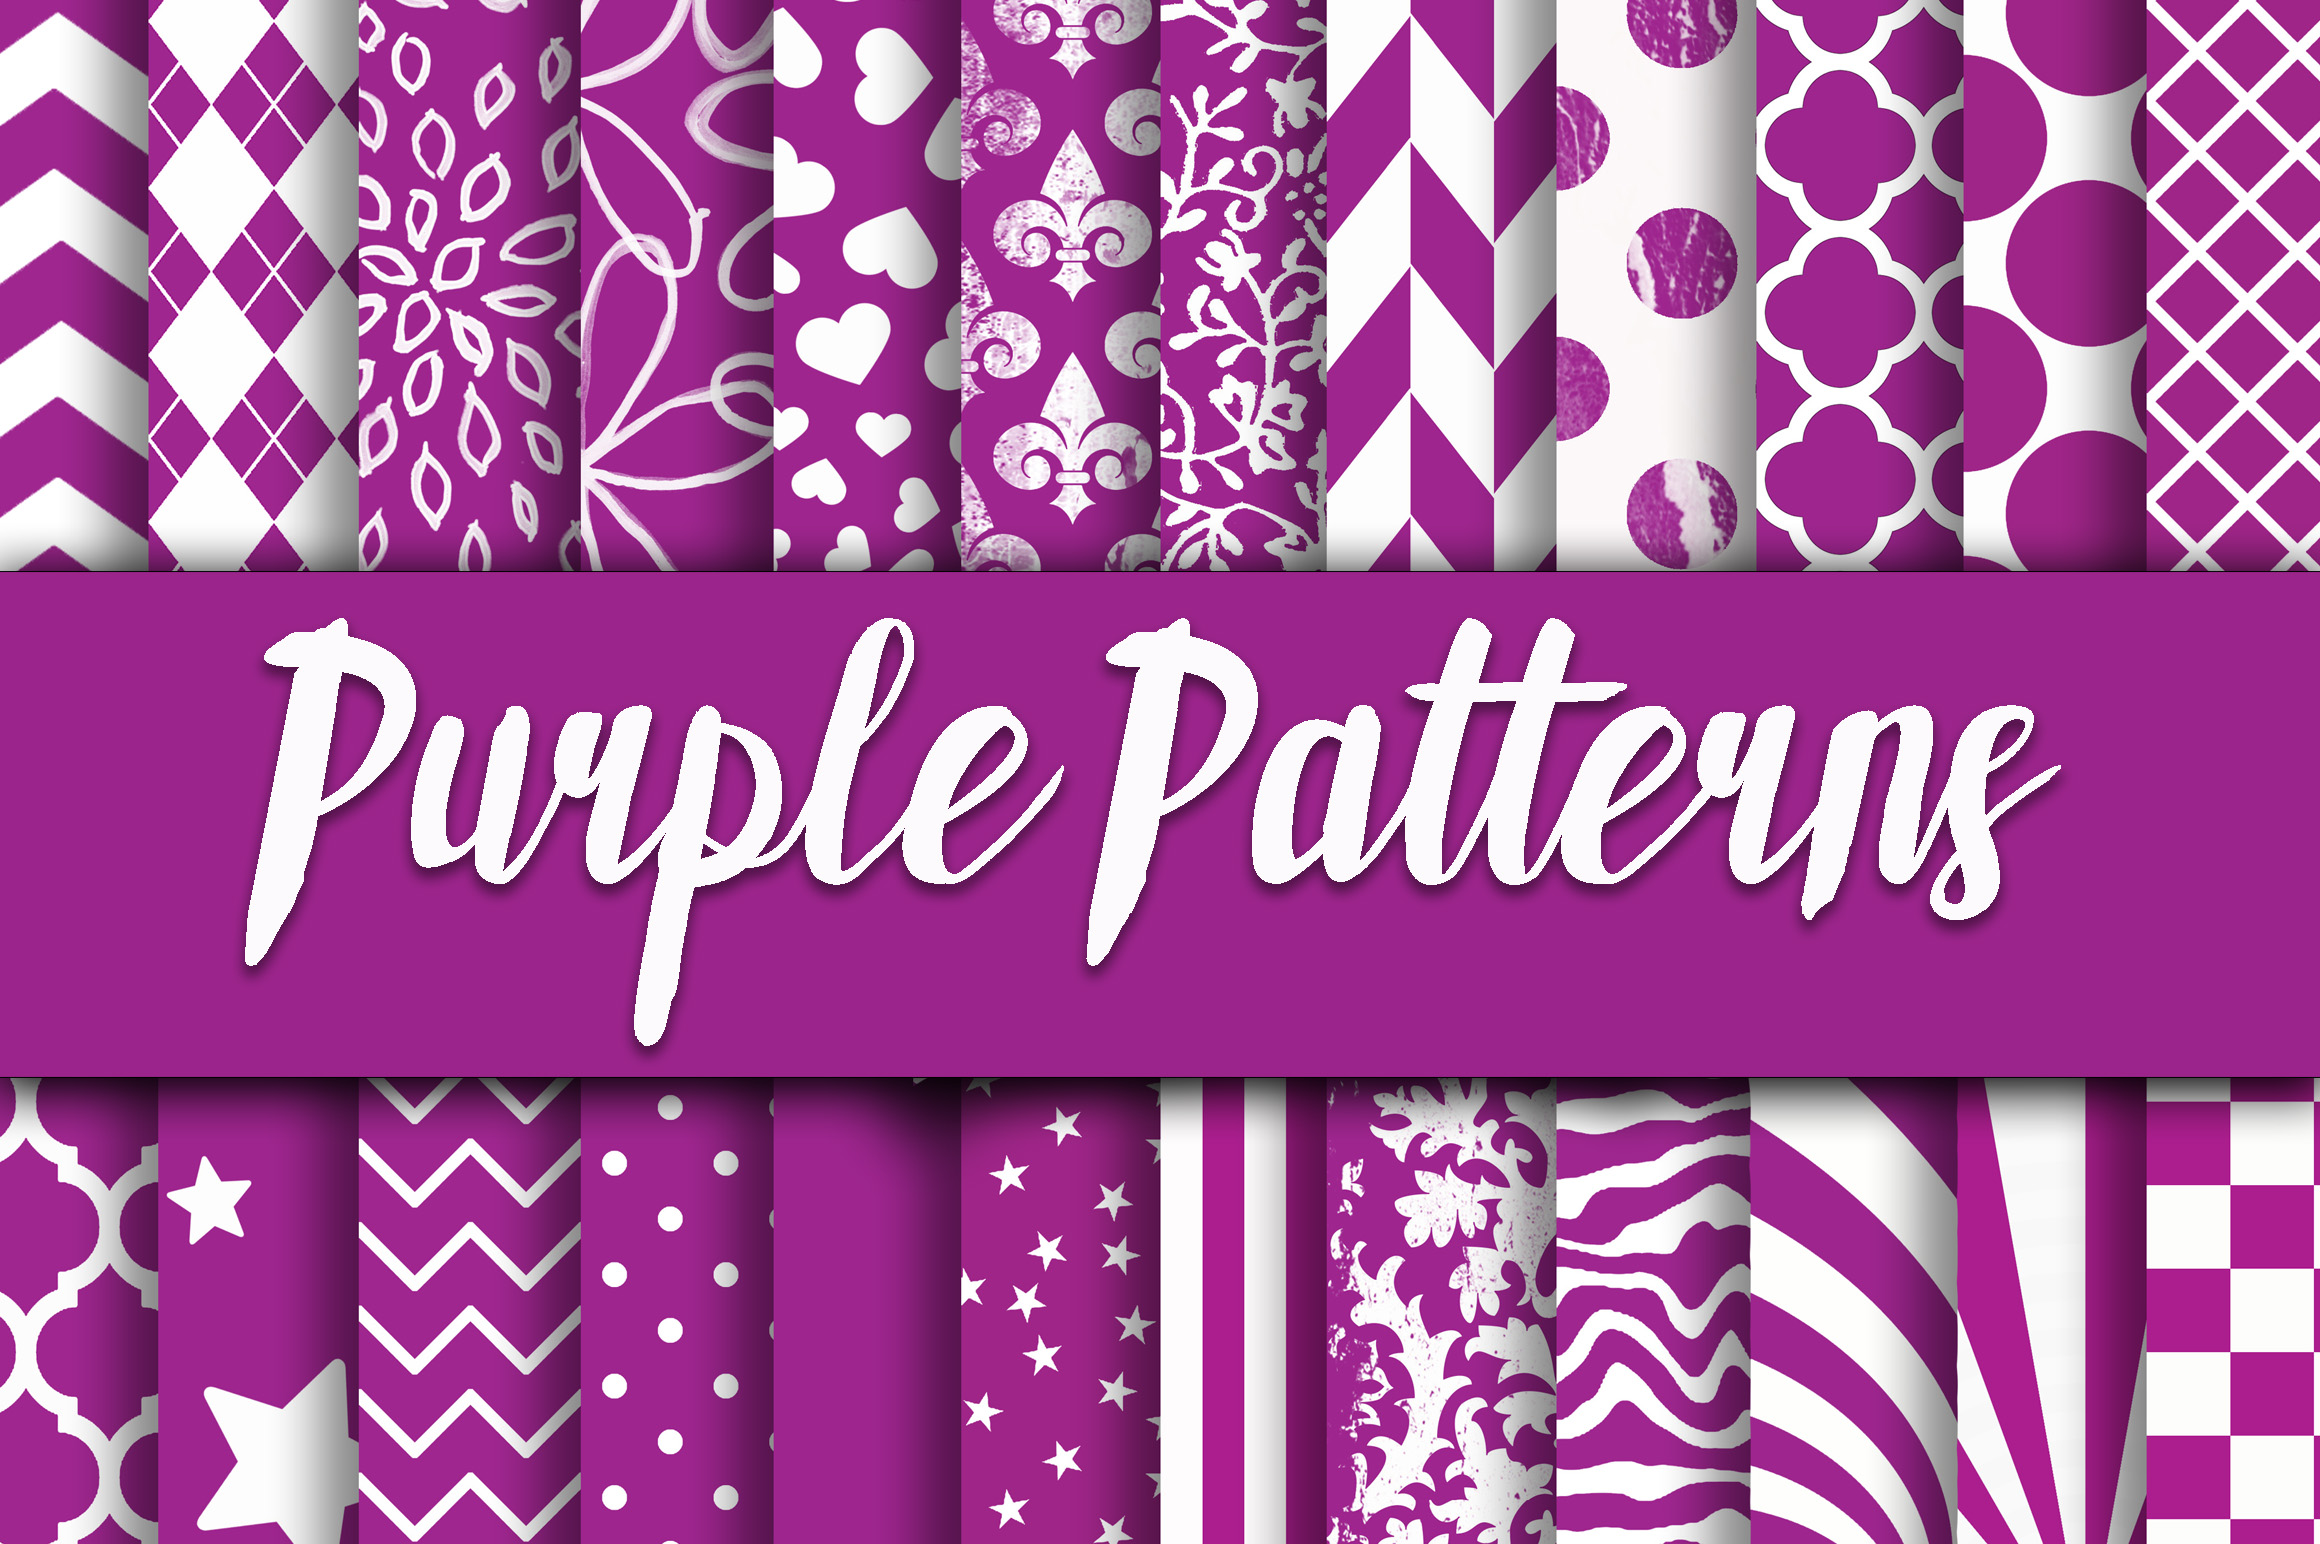 Purple Patterns Digital Paper Graphic Backgrounds By oldmarketdesigns - Image 1